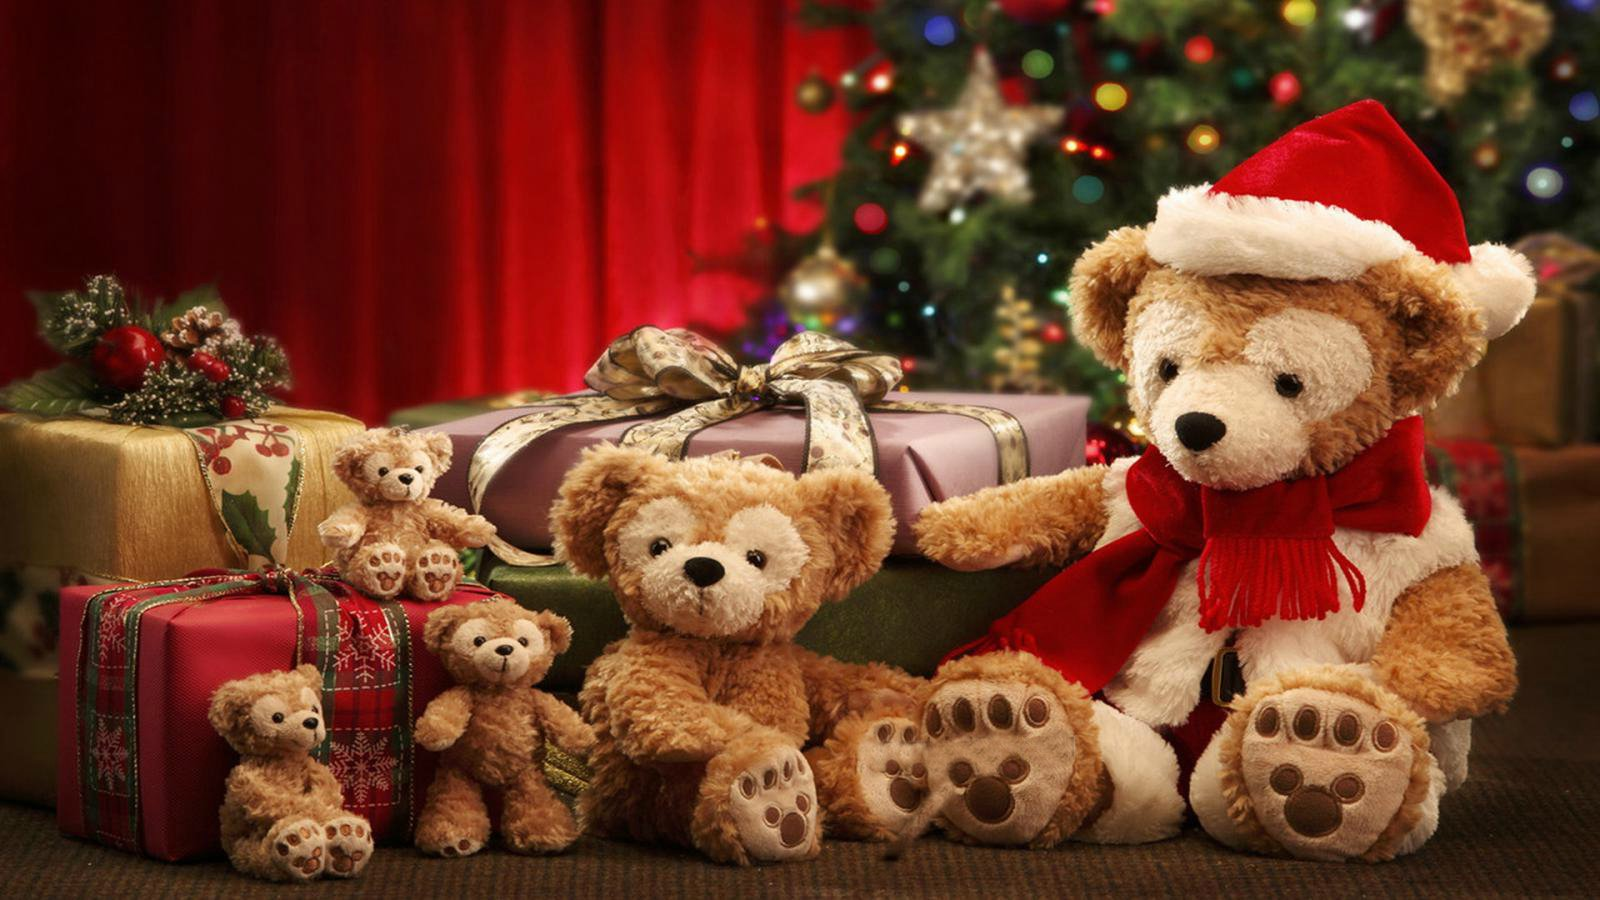 Christmas Teddy Bear Wallpaper: Christmas Wallpaper And Background Image